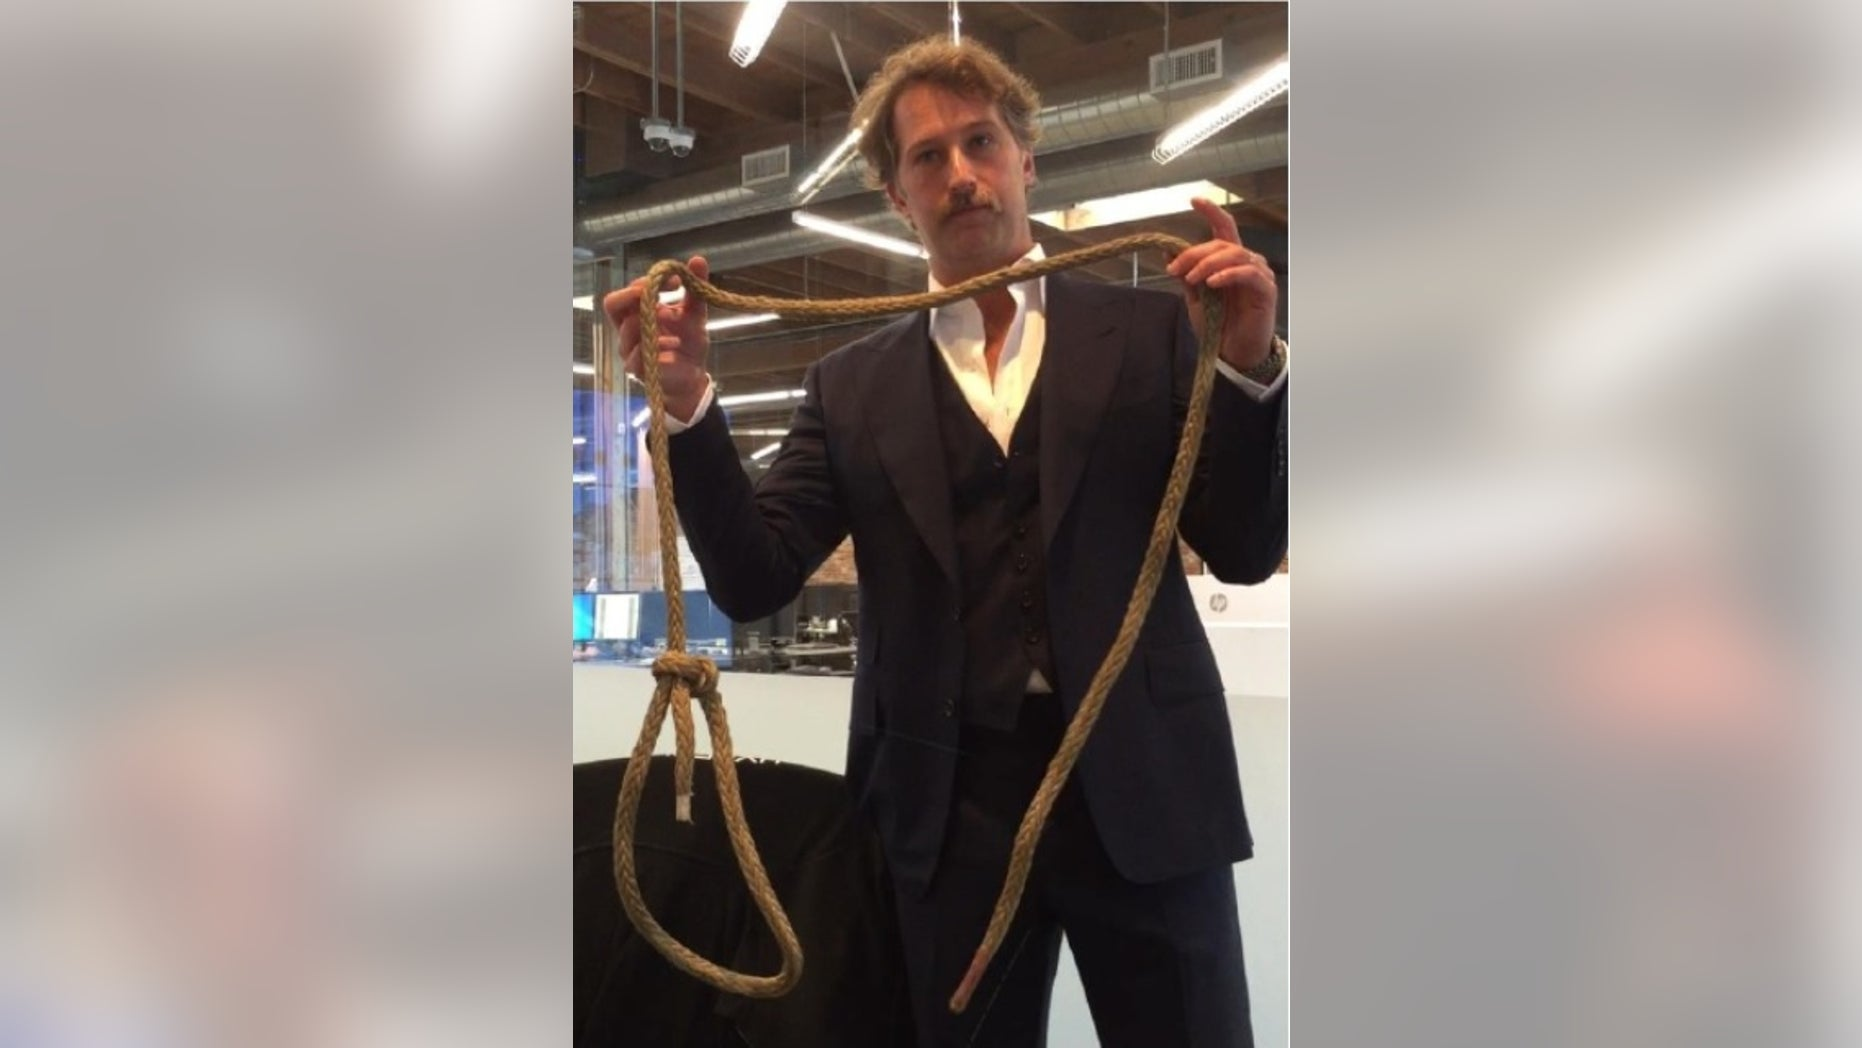 Former Hyperloop One CTO Brogan BamBrogan with the noose allegedly placed on his office chair (Image from lawsuit against Hyperloop One).